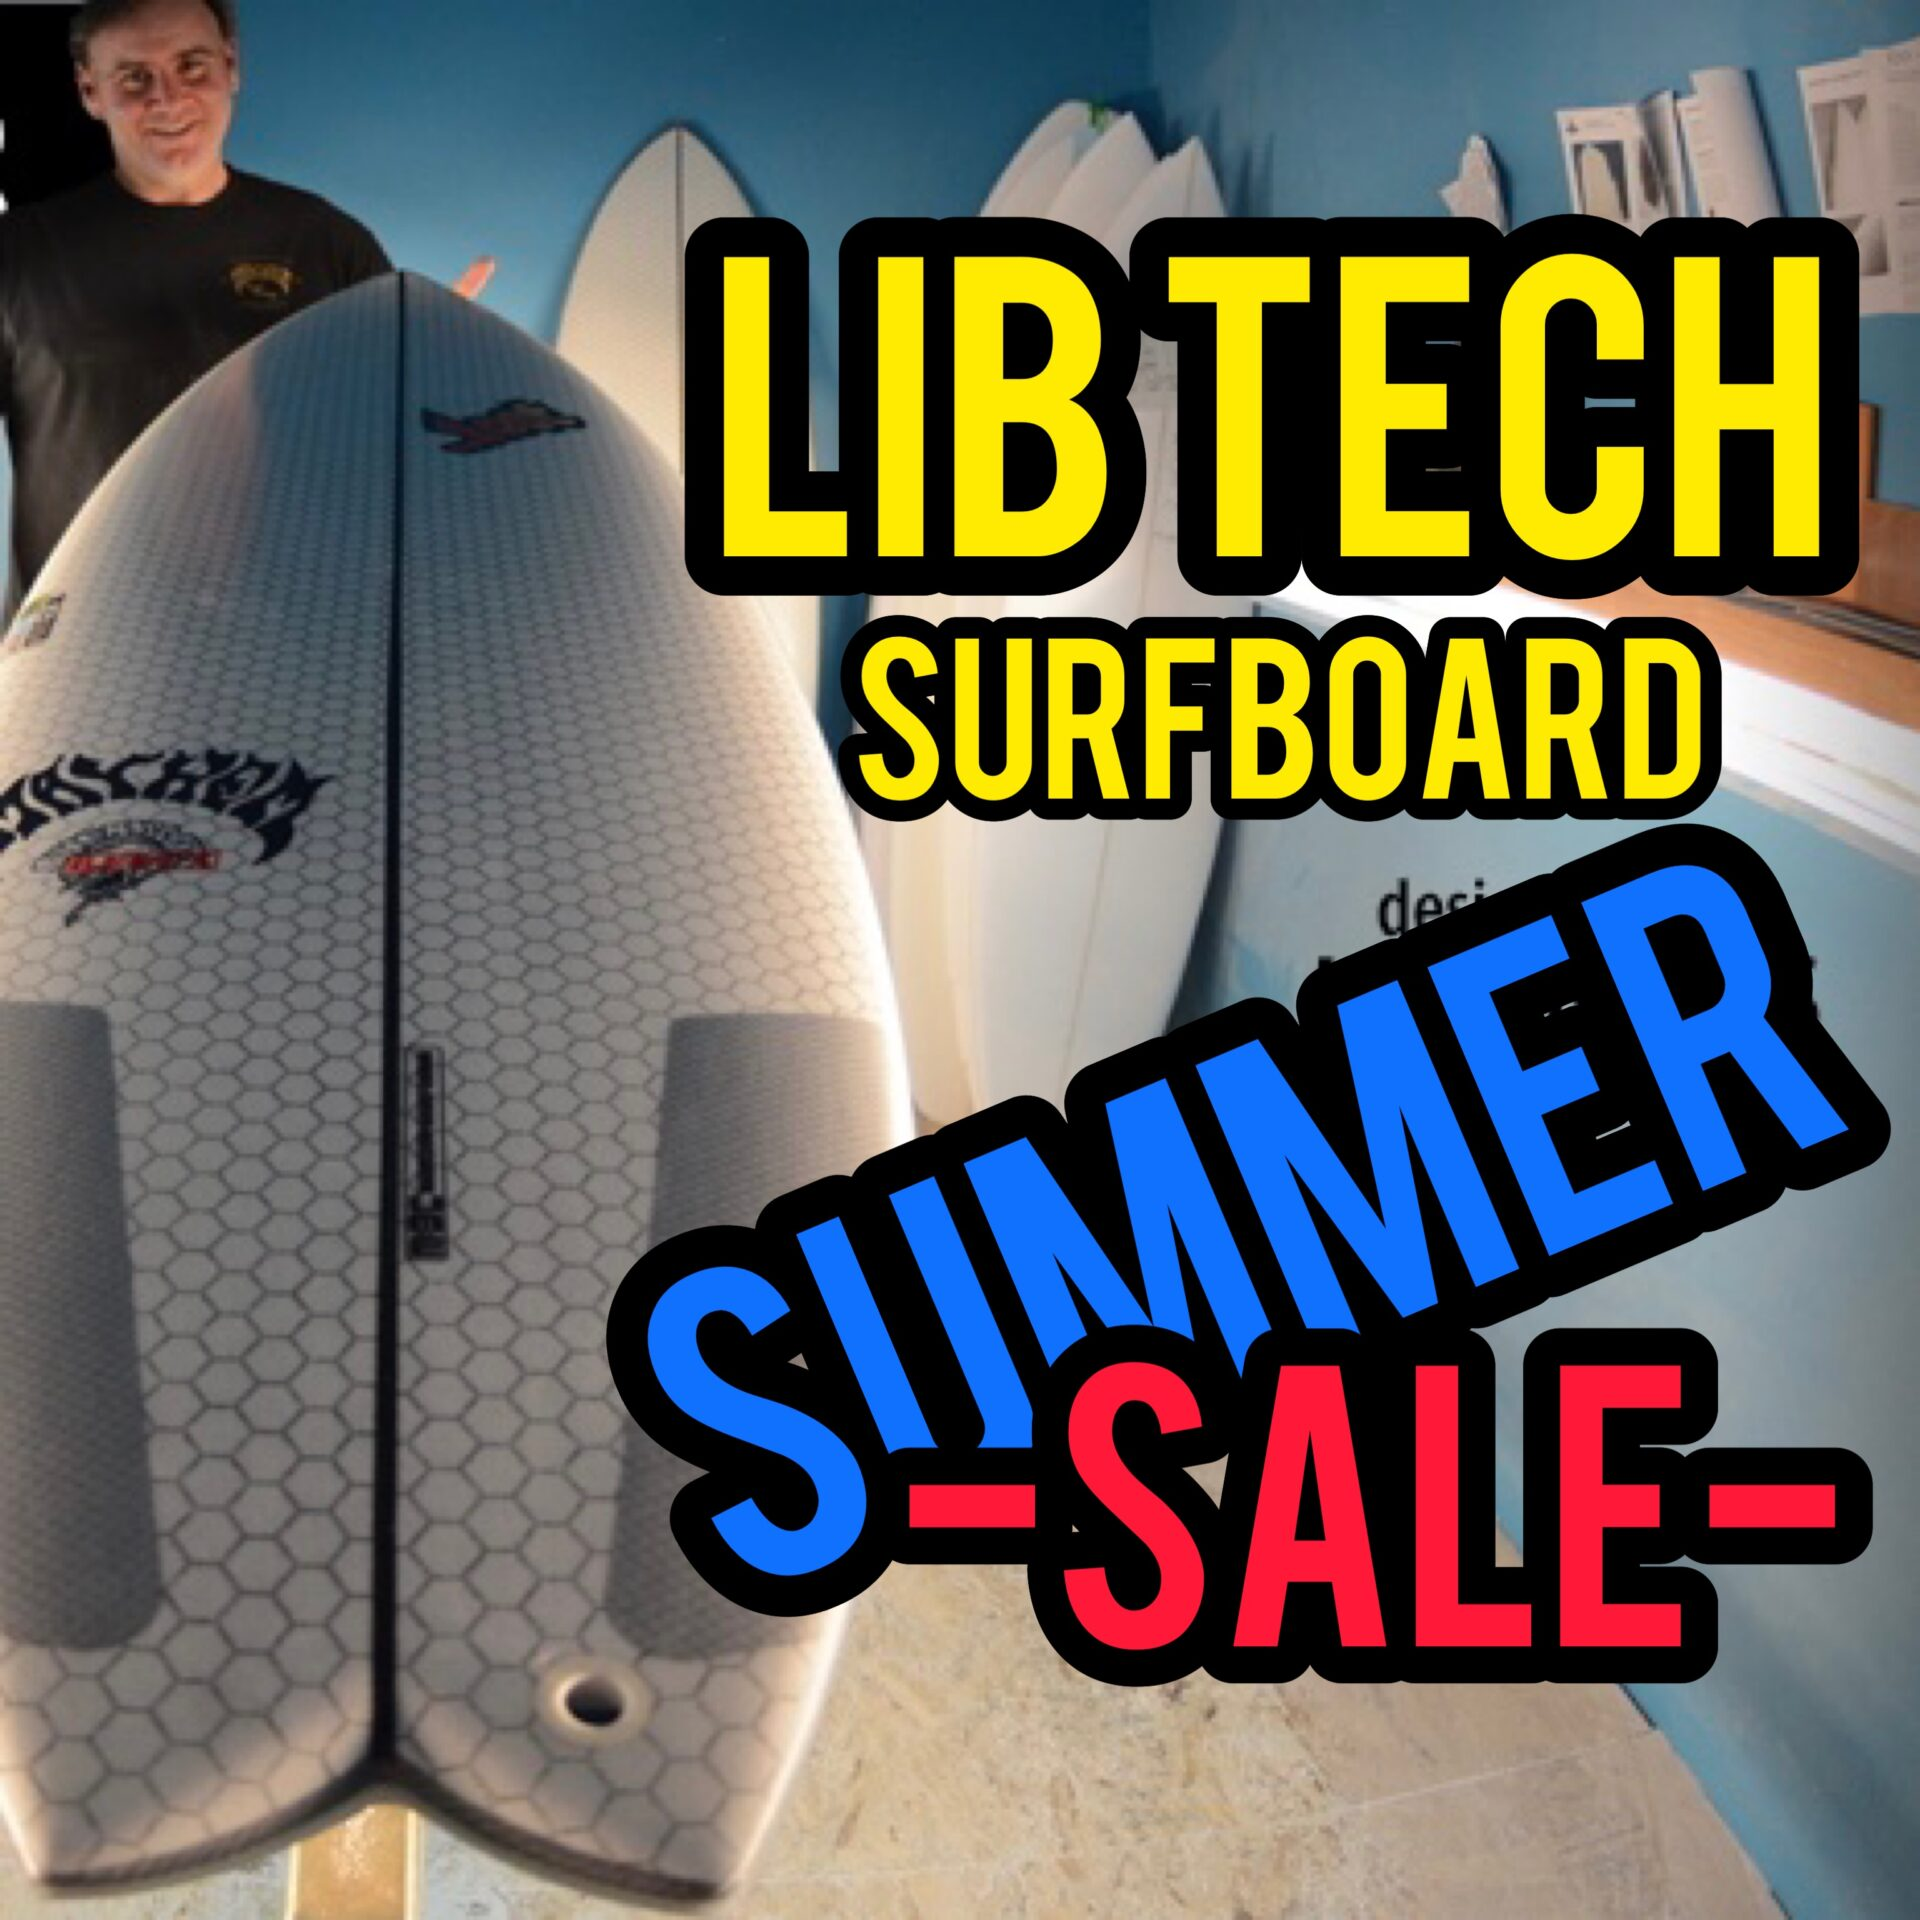 LIBTECH SURFBOARD SUMMER SALE